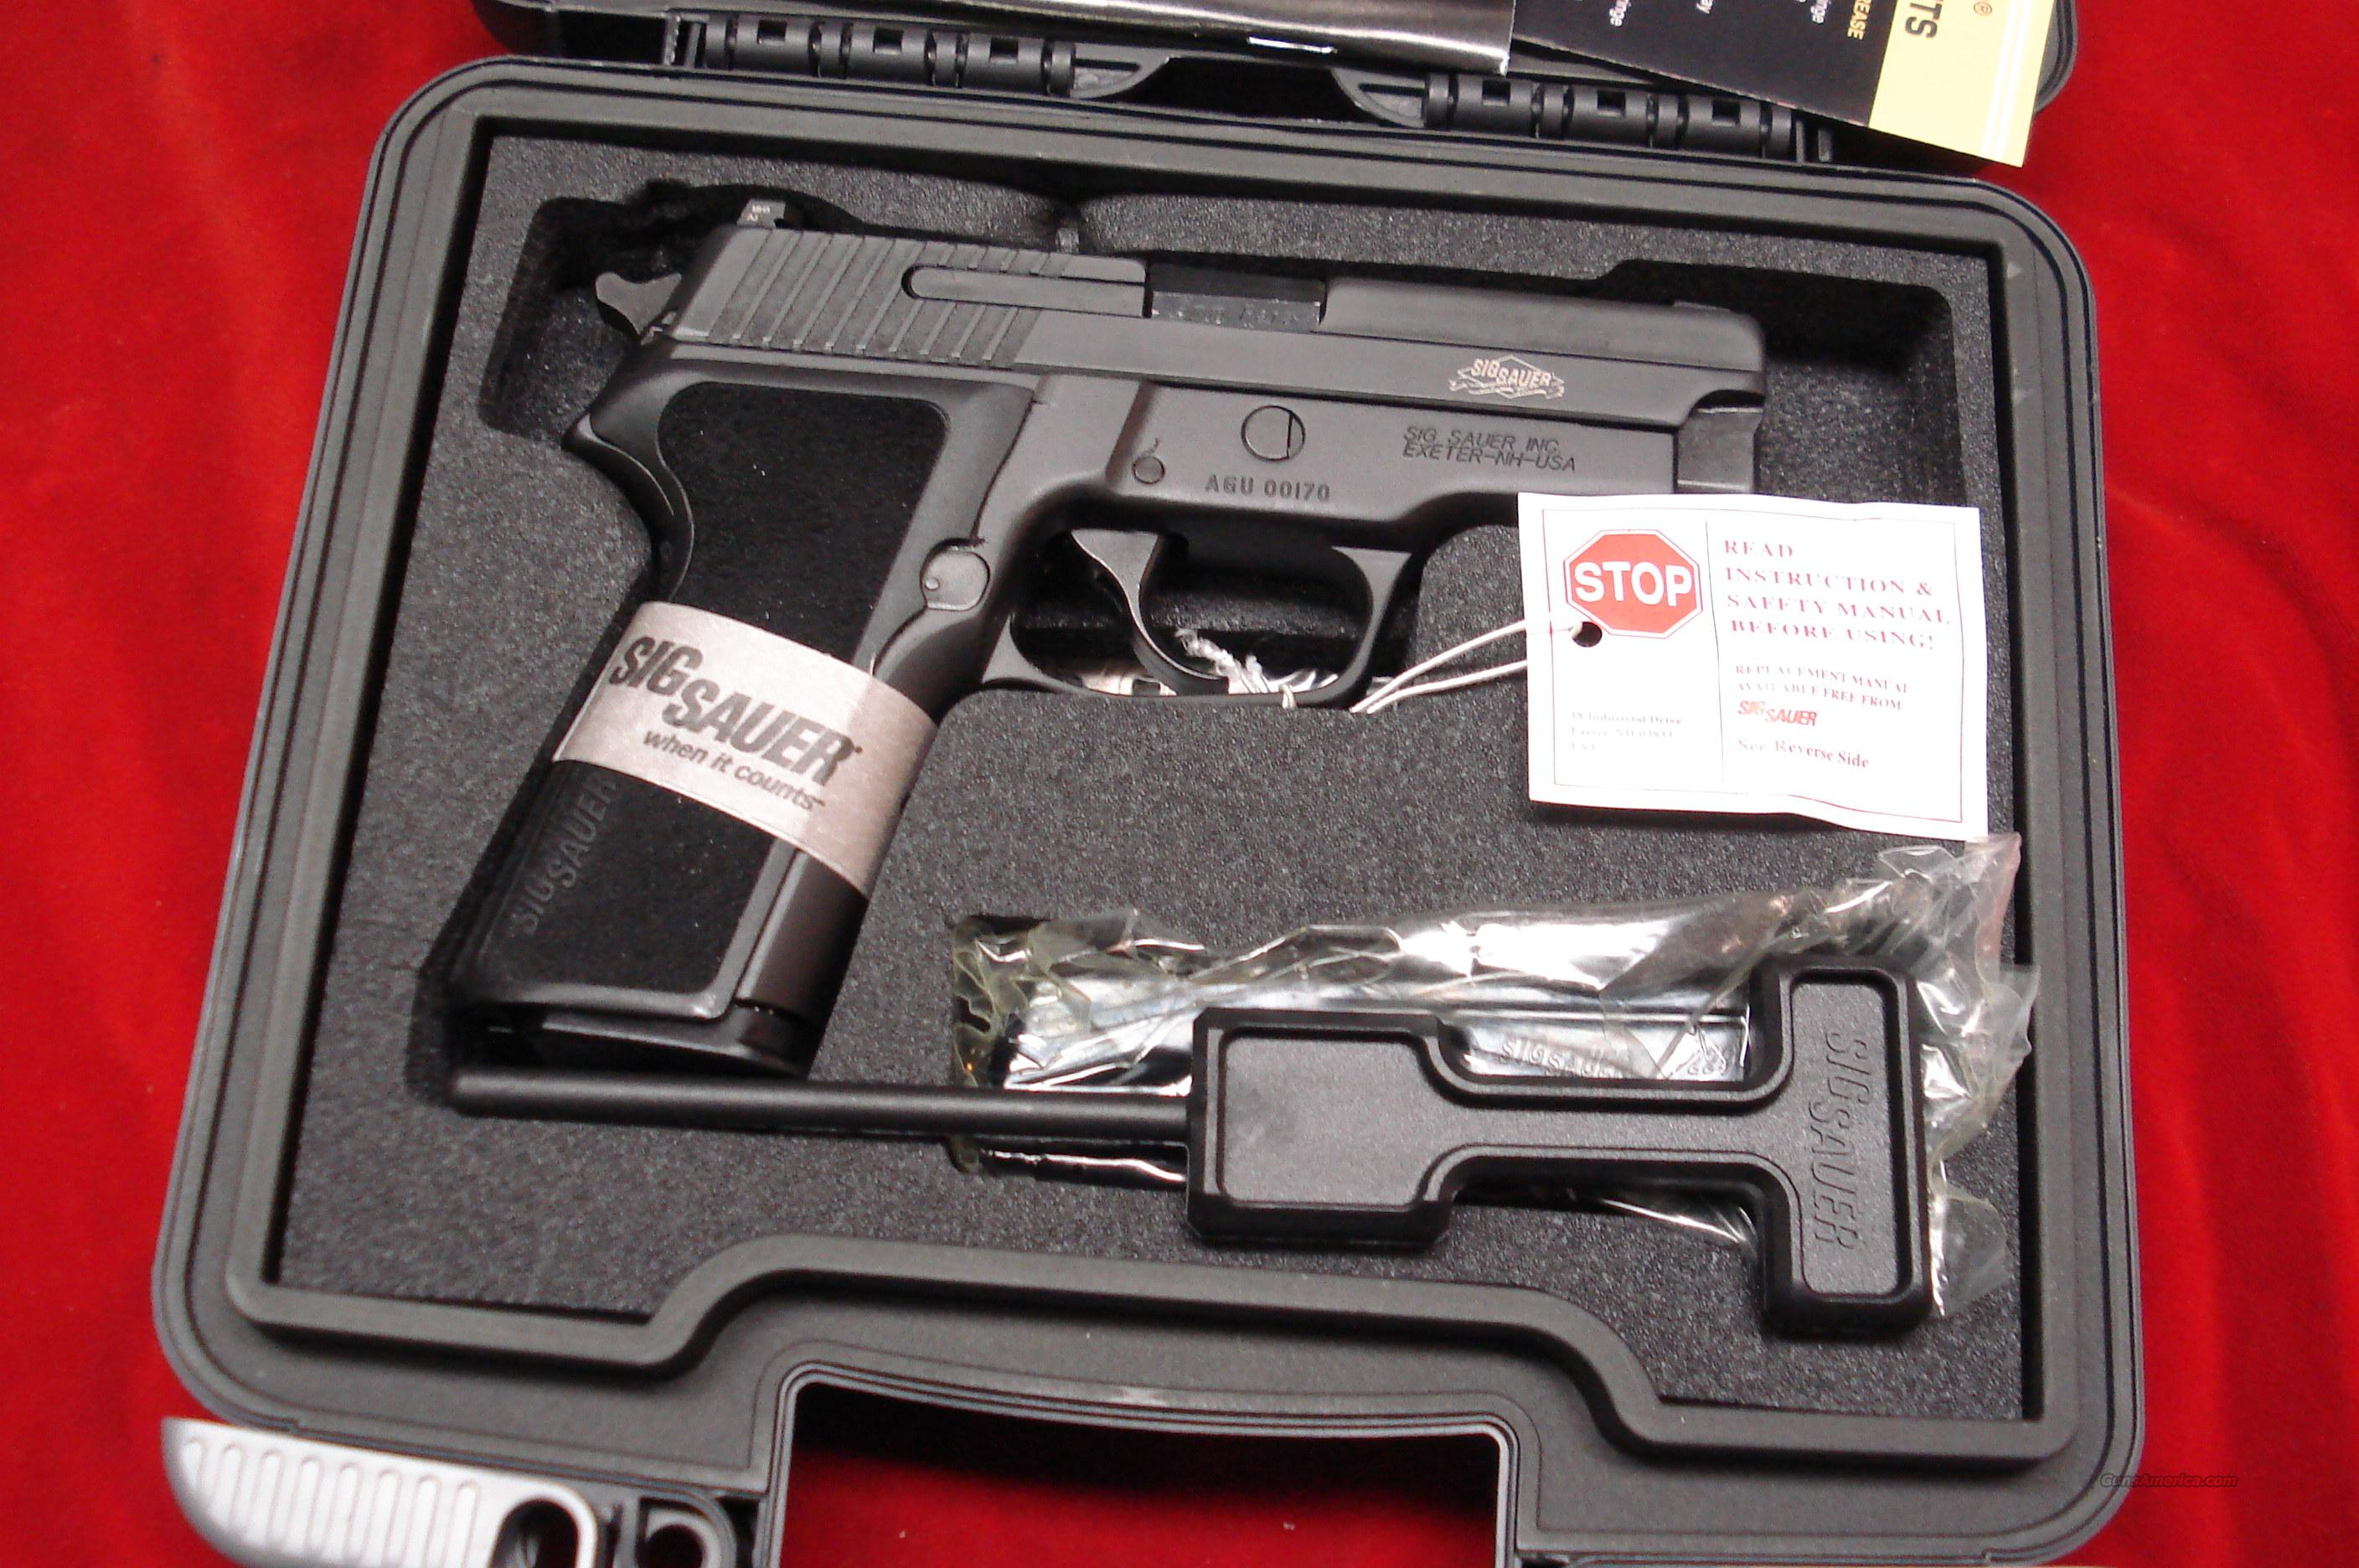 SIG SAUER P229 SAS GEN2 9MM WITH NIGHT SIGHTS NEW   Guns > Pistols > Sig - Sauer/Sigarms Pistols > P229